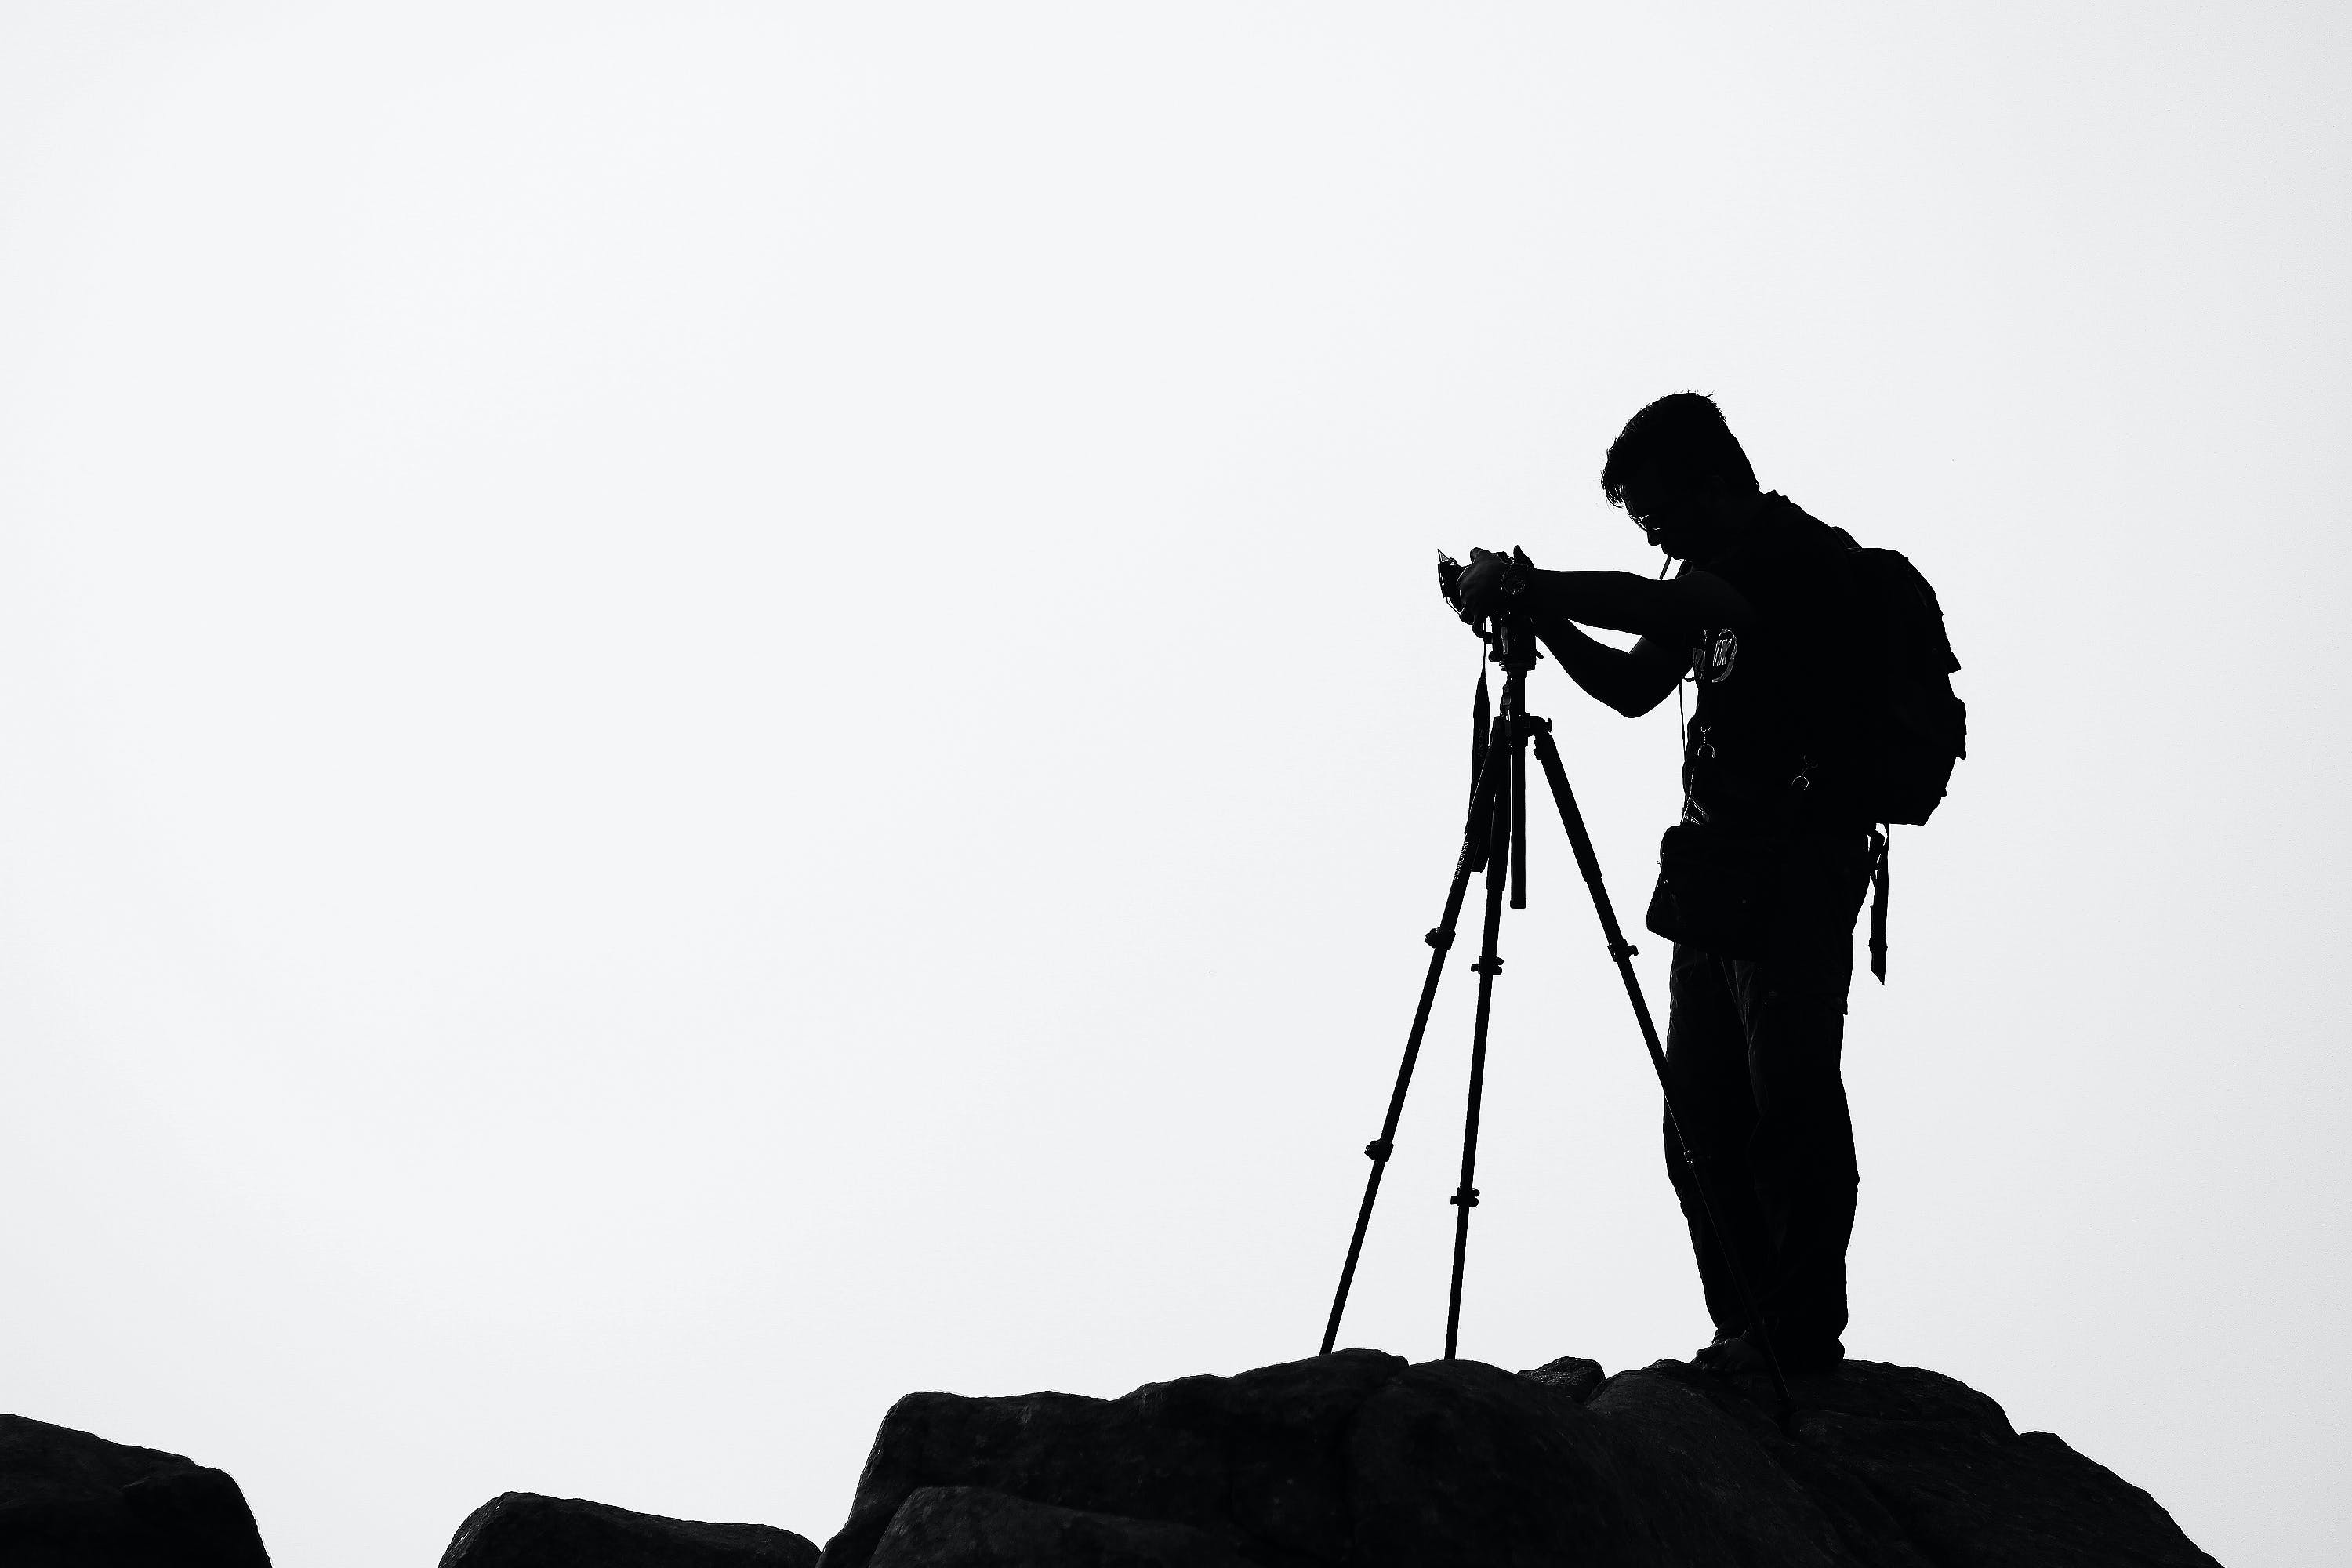 Silhouette of Man Holding Camera